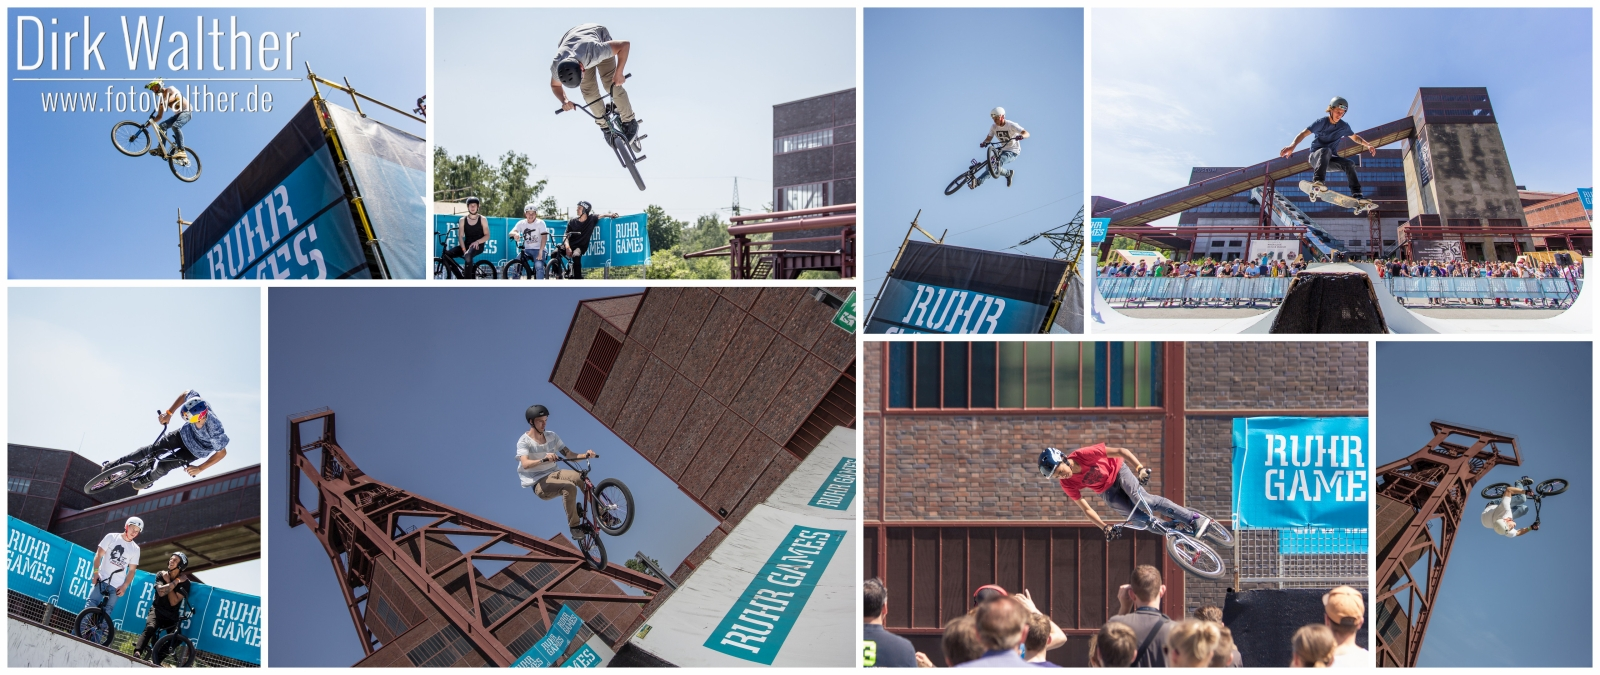 Collage: Ruhr Games